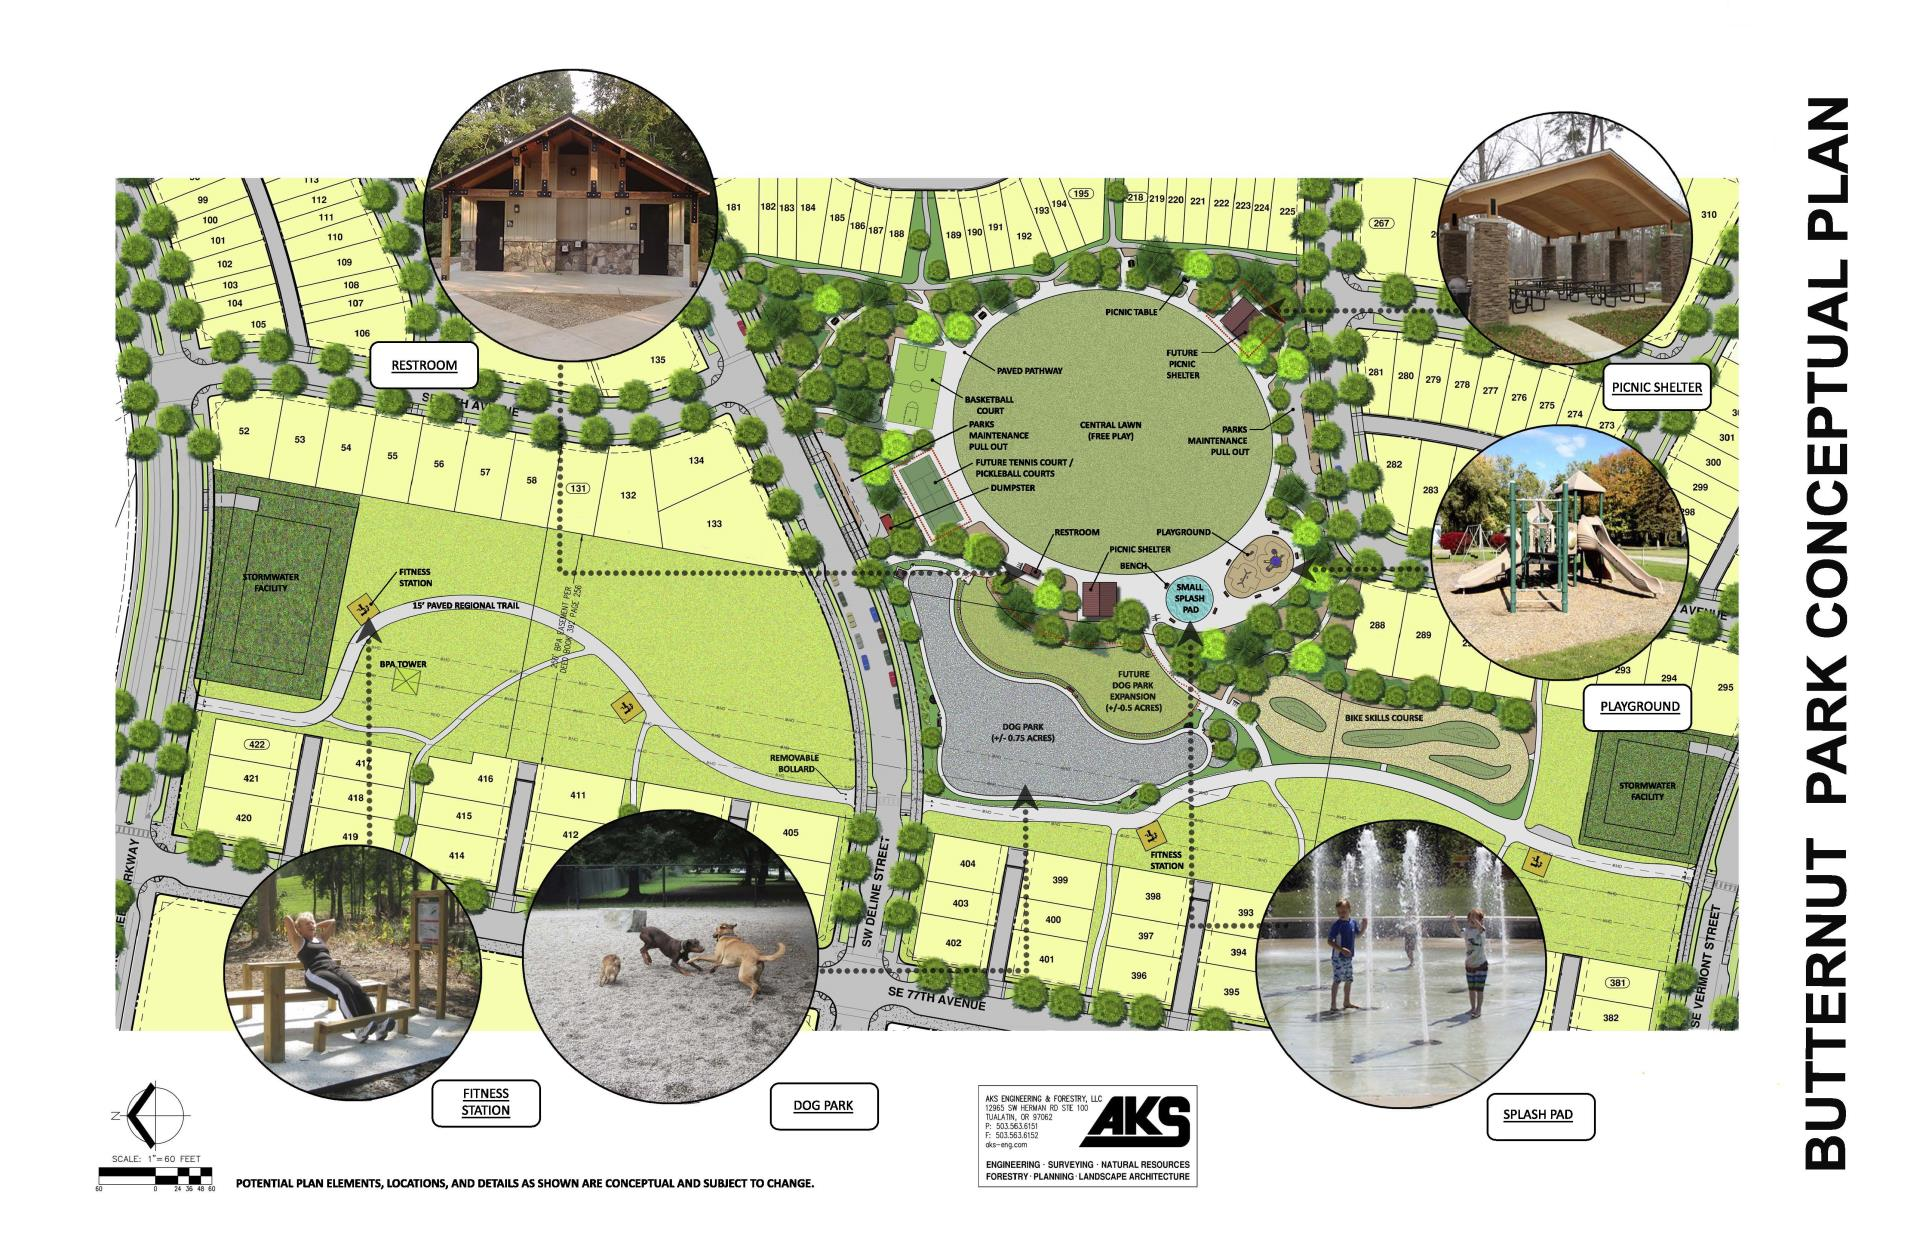 Butternut Creek Park Master Plan